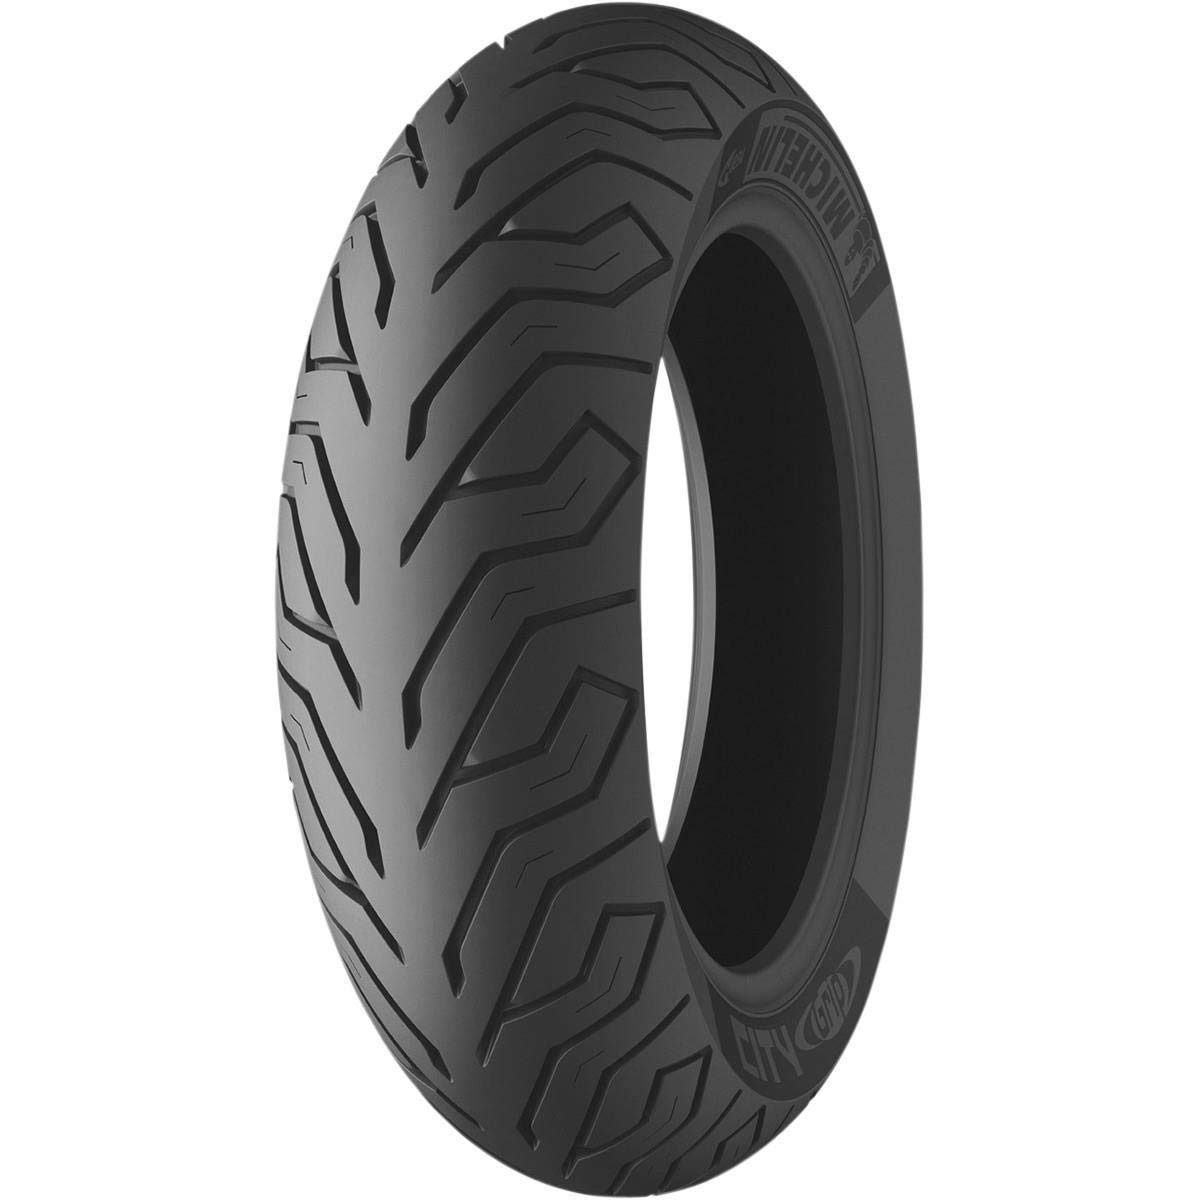 Michelin City Grip Scooter Tire - Rear - 150/70-13 , Position: Rear, Rim Size: 13, Tire Size: 150/70-13, Tire Type: Scooter/Moped, Load Rating: 64, Speed Rating: S 07768 4333047744